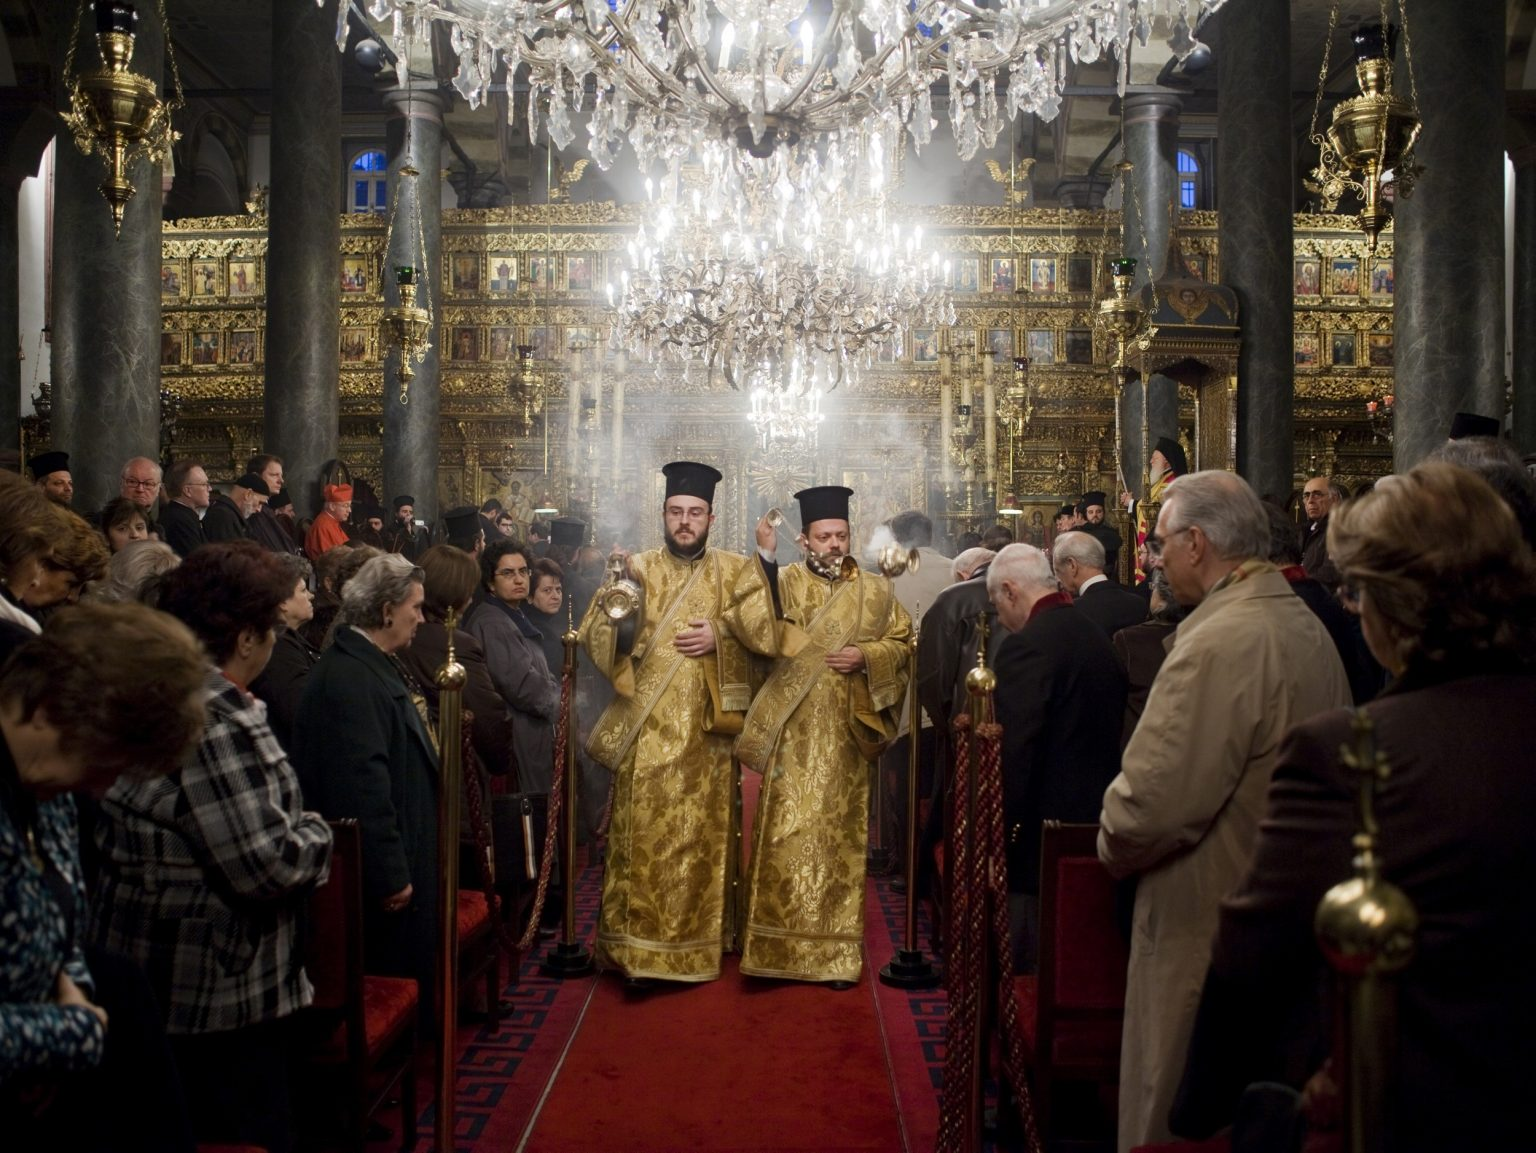 Mass in St. George's church in Istanbul, the religious seat of the Ecumenical Patriarchate of Constantinople.